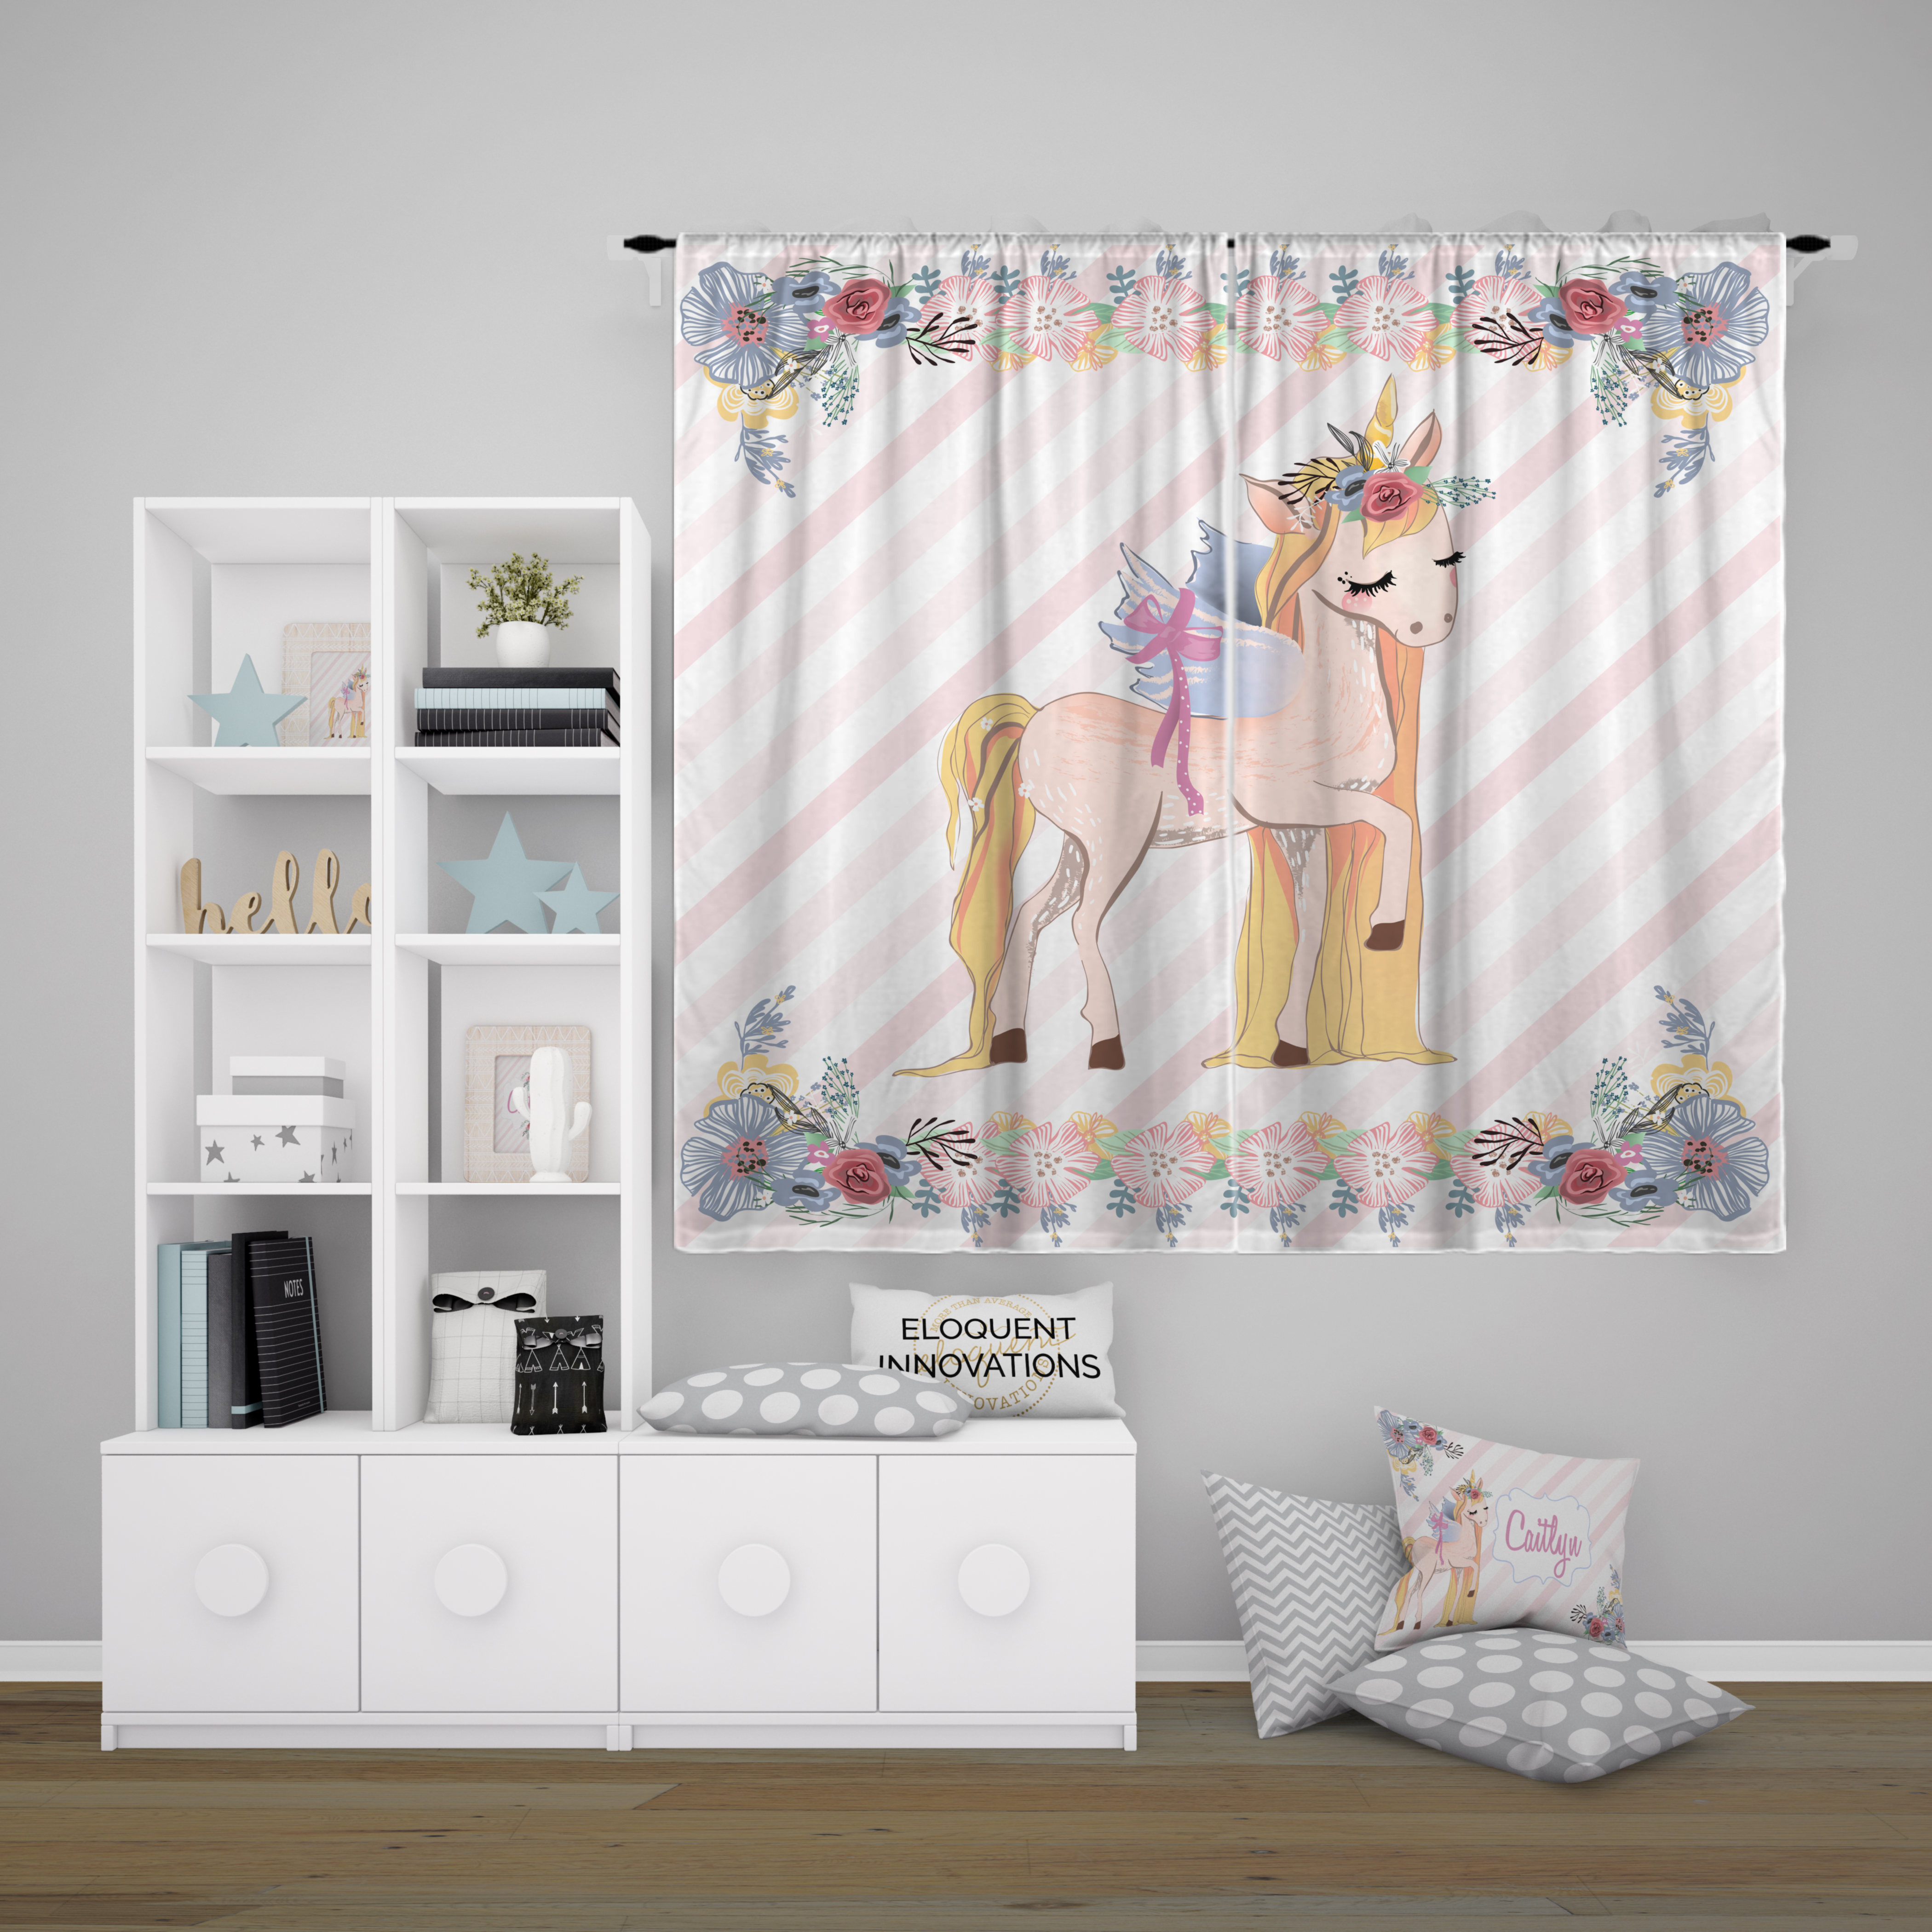 Unicorn Curtains Girls Room Curtains With Flower And Striped Background 421 Eloquent Innovations